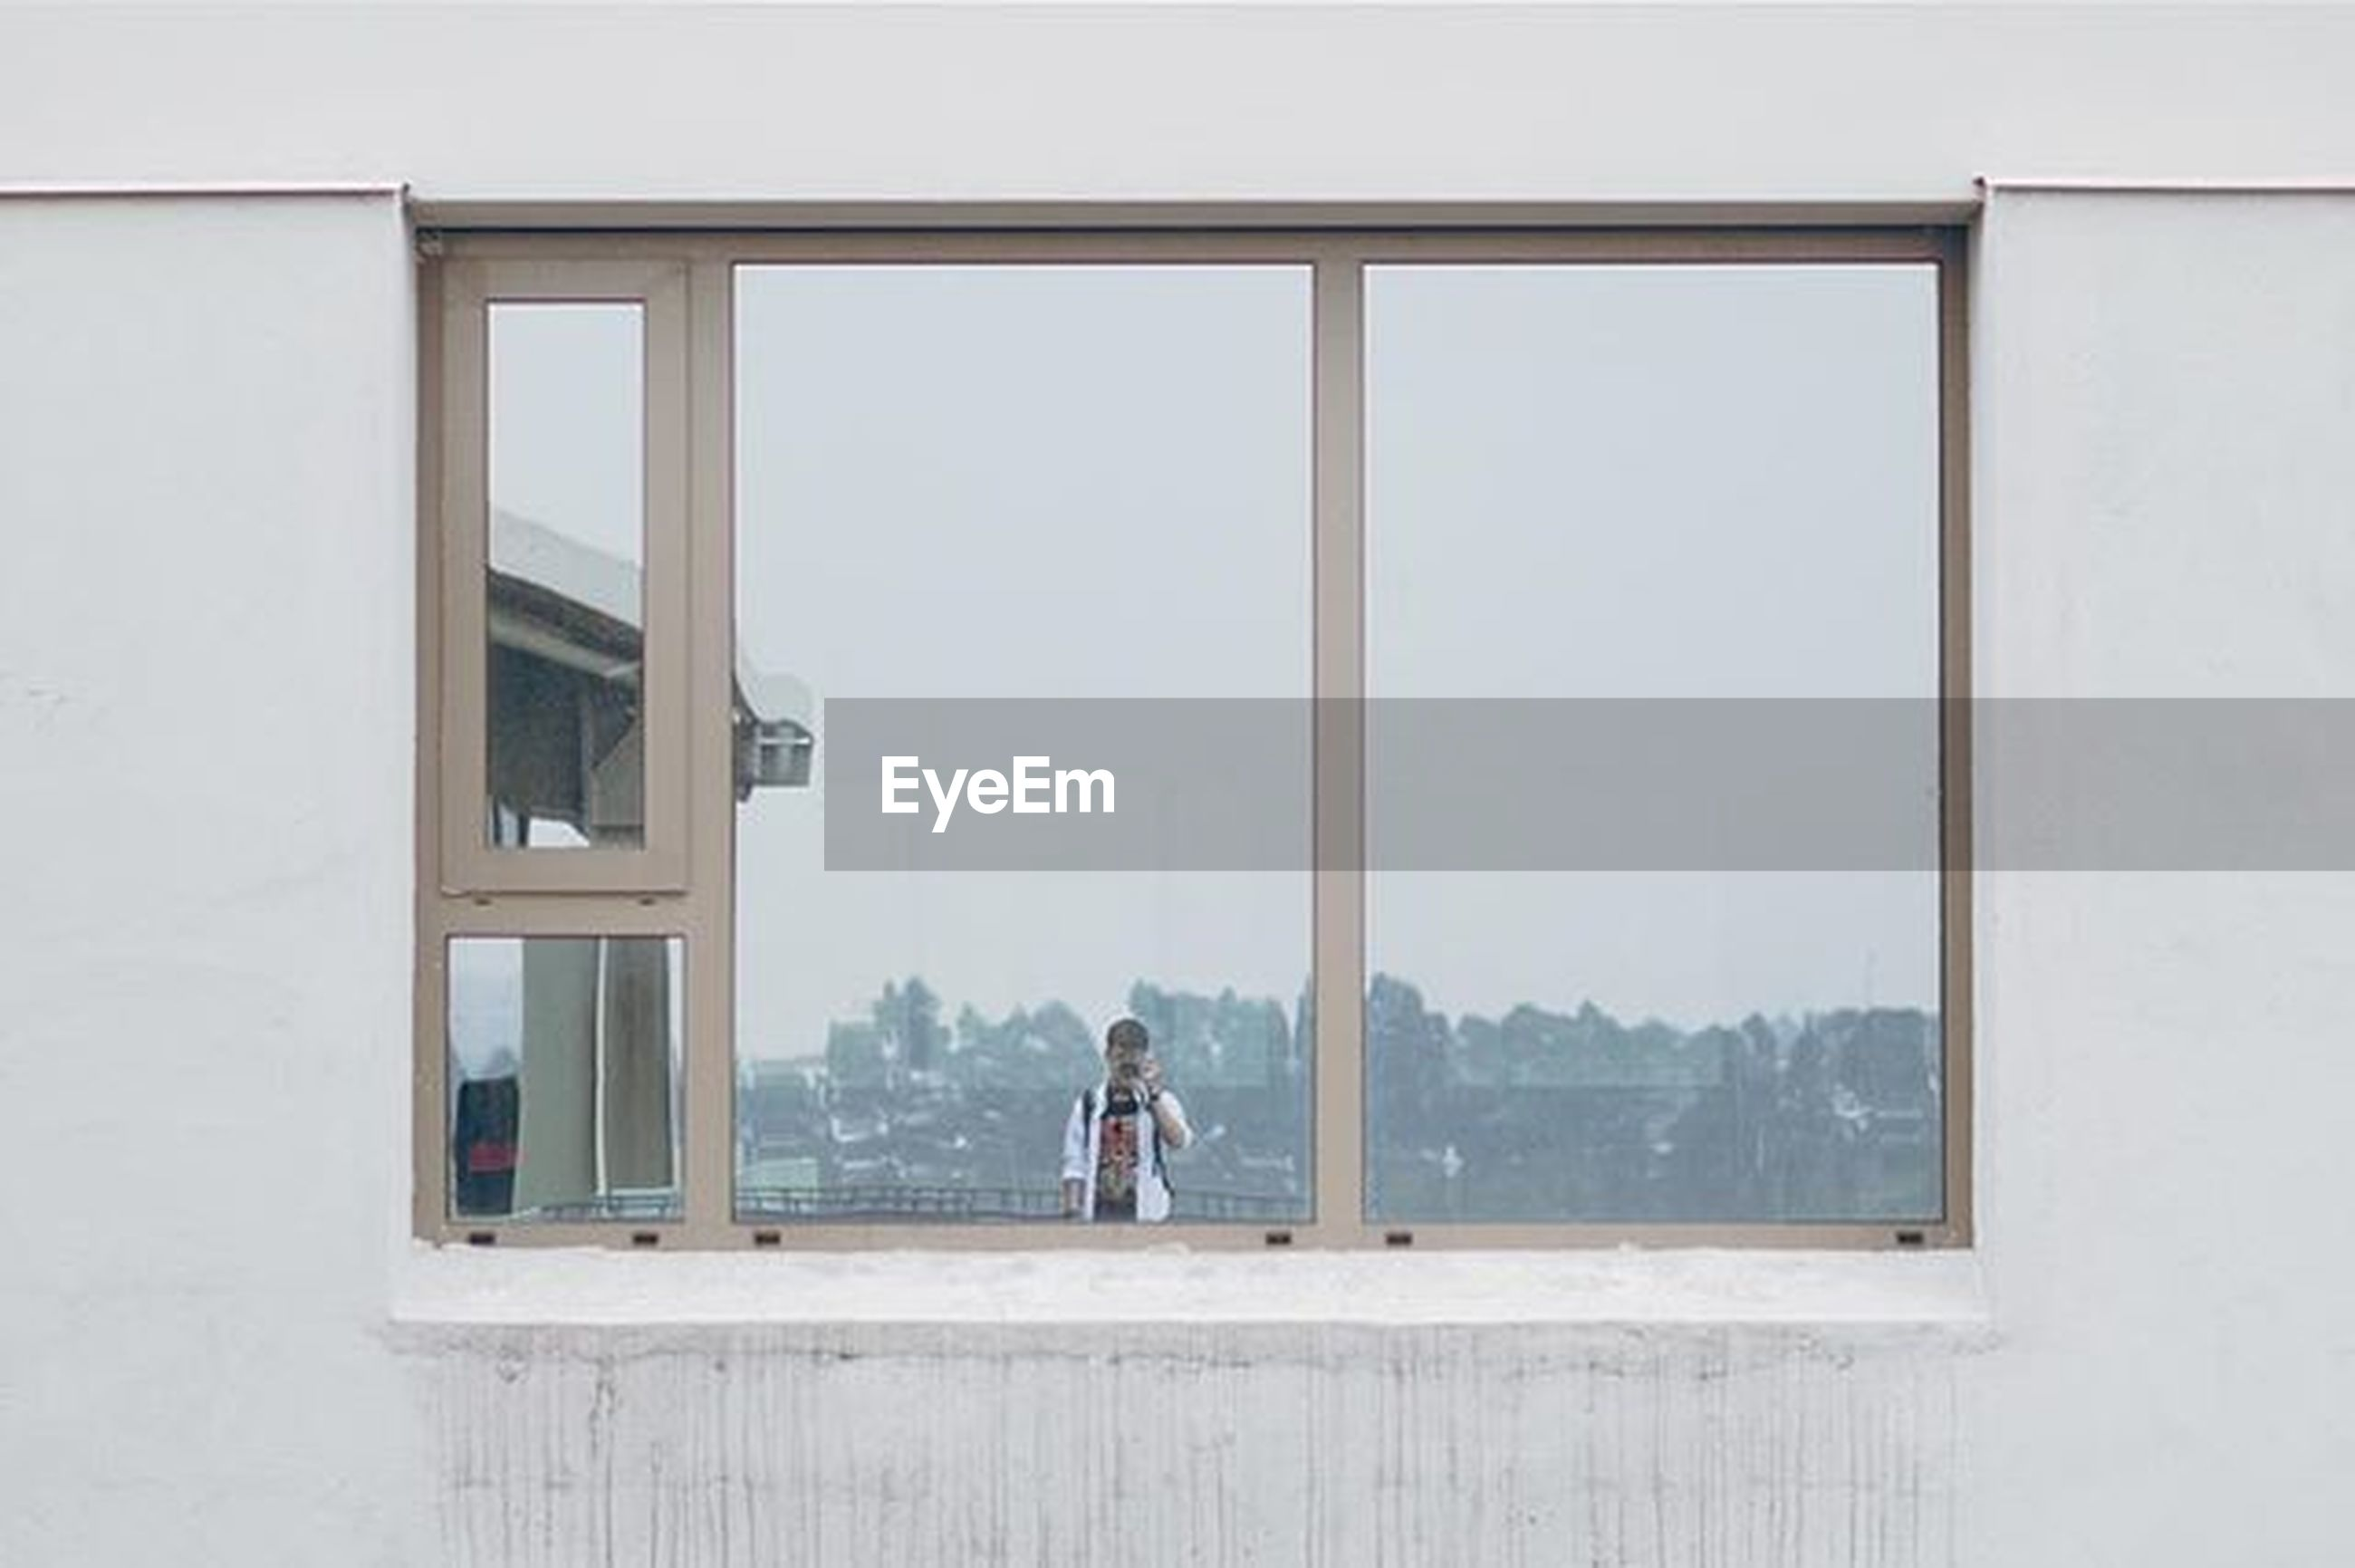 window, architecture, built structure, glass - material, building exterior, indoors, transparent, lifestyles, men, day, leisure activity, person, reflection, copy space, building, city, house, looking through window